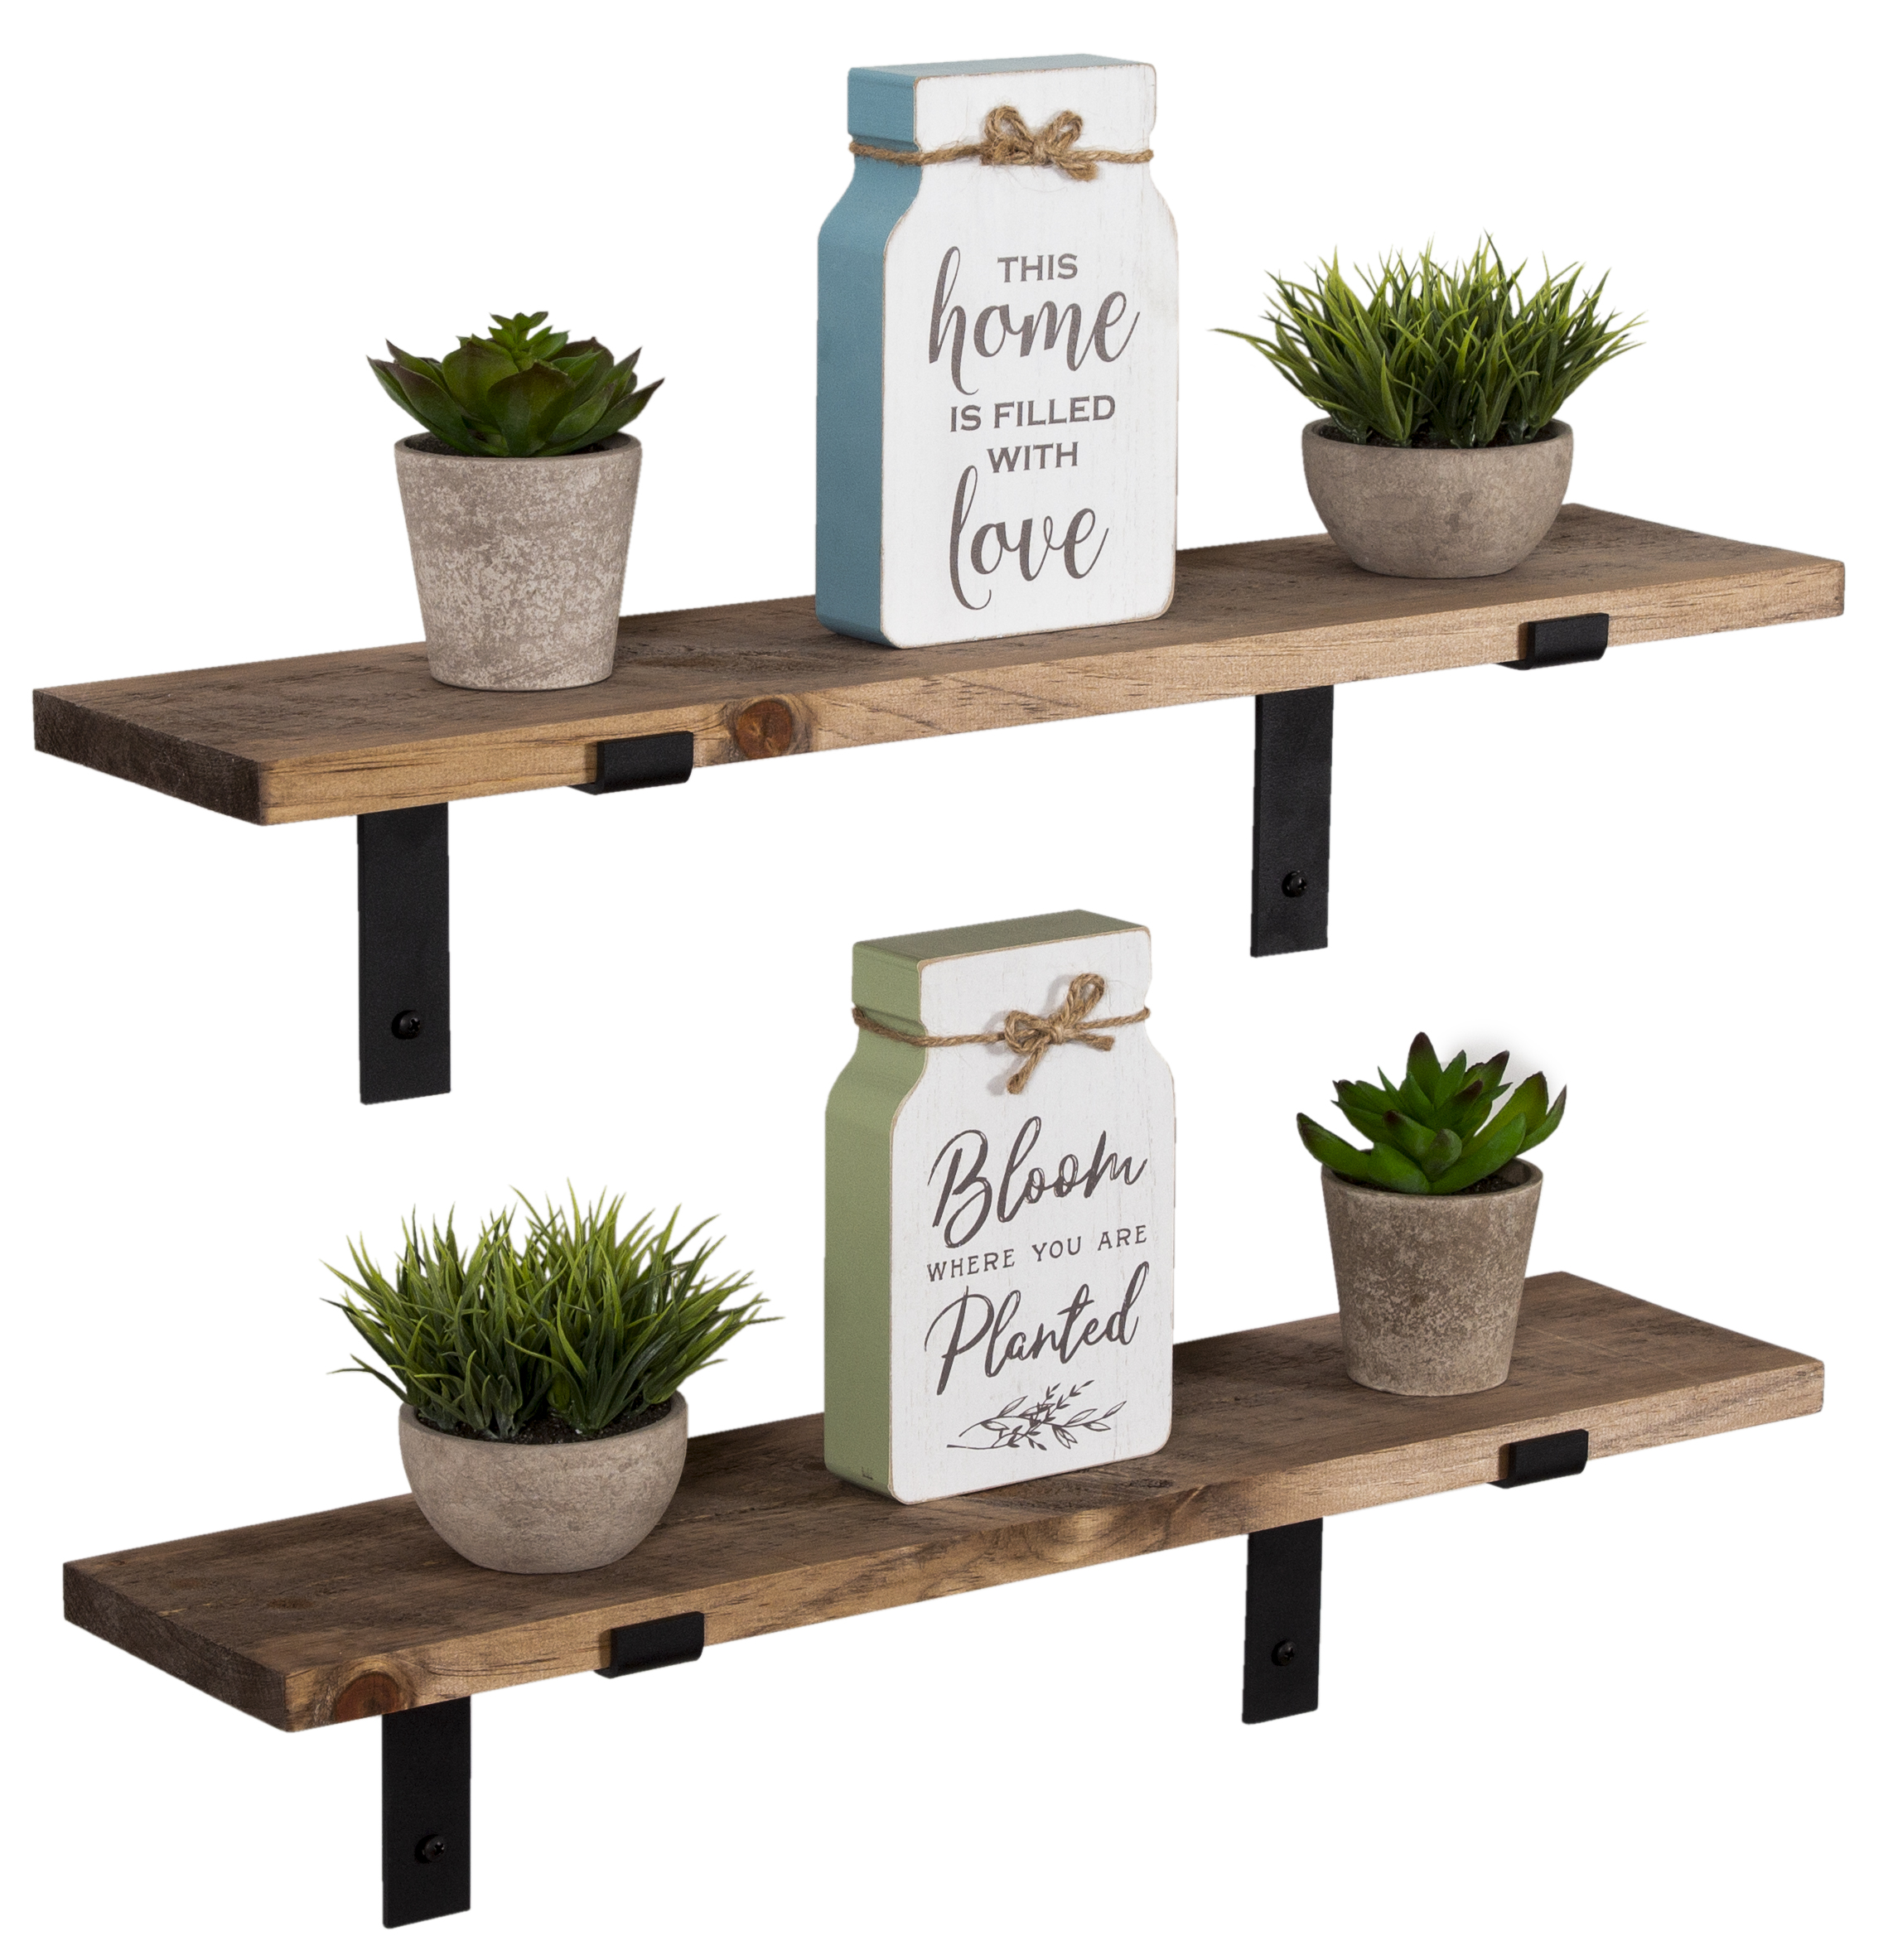 Imperative Decor Rustic Wood Floating Shelves Wall Mounted Storage Shelf With L Brackets Usa Handmade Set Of 2 24 X 5 5in Special Walnut